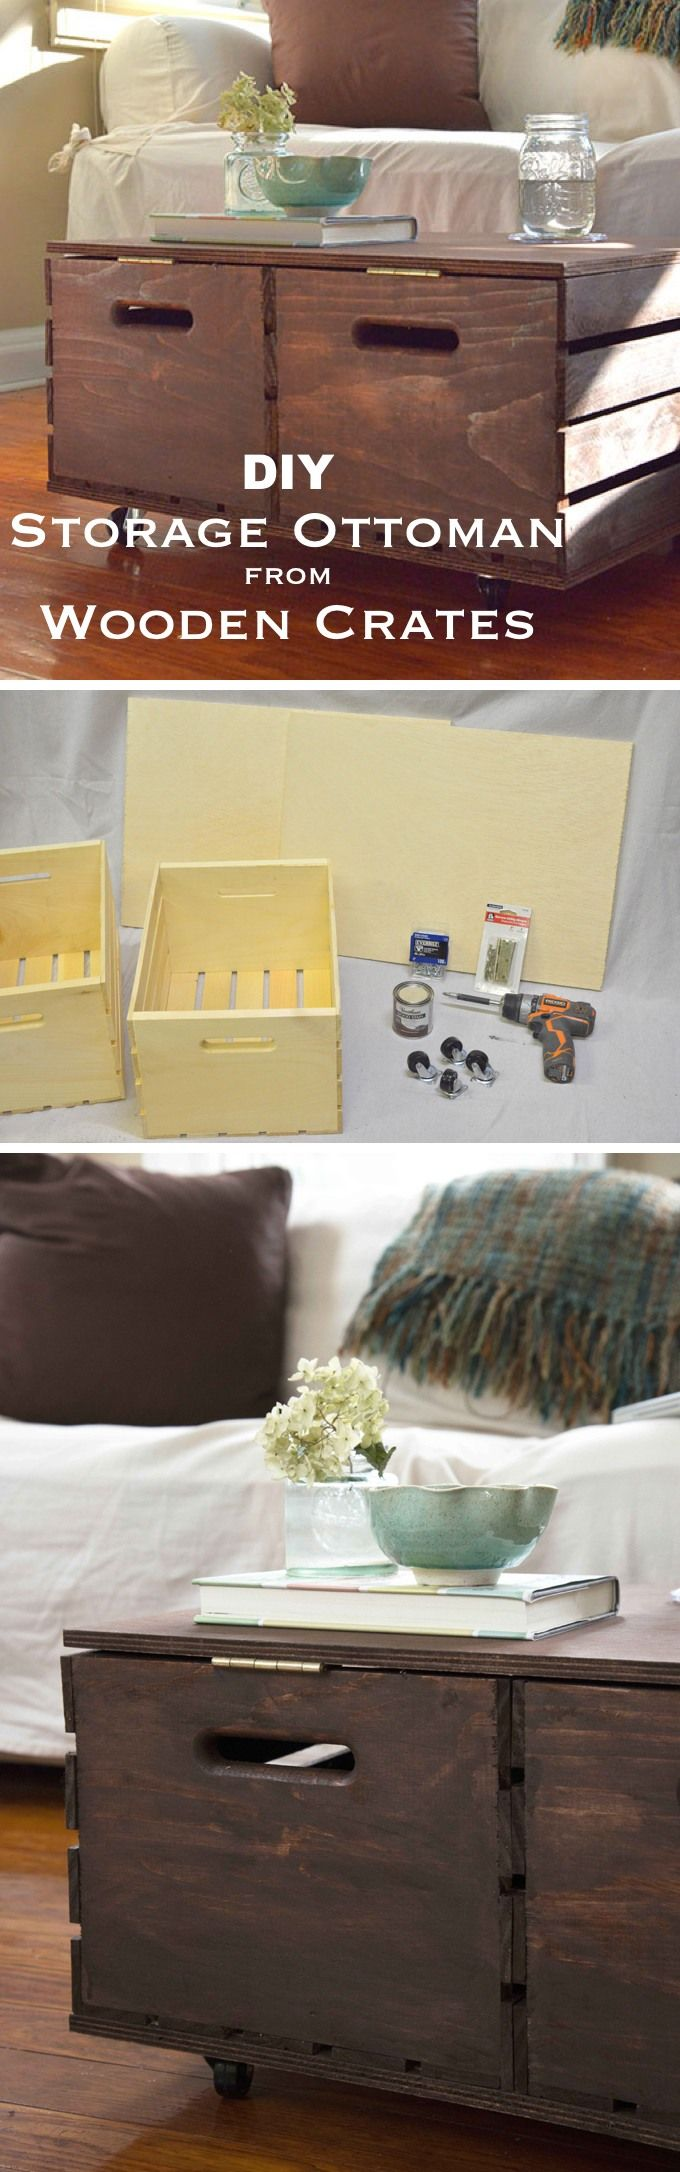 How to build a storage ottoman - Diy Storage Ottoman Made From Wooden Crates